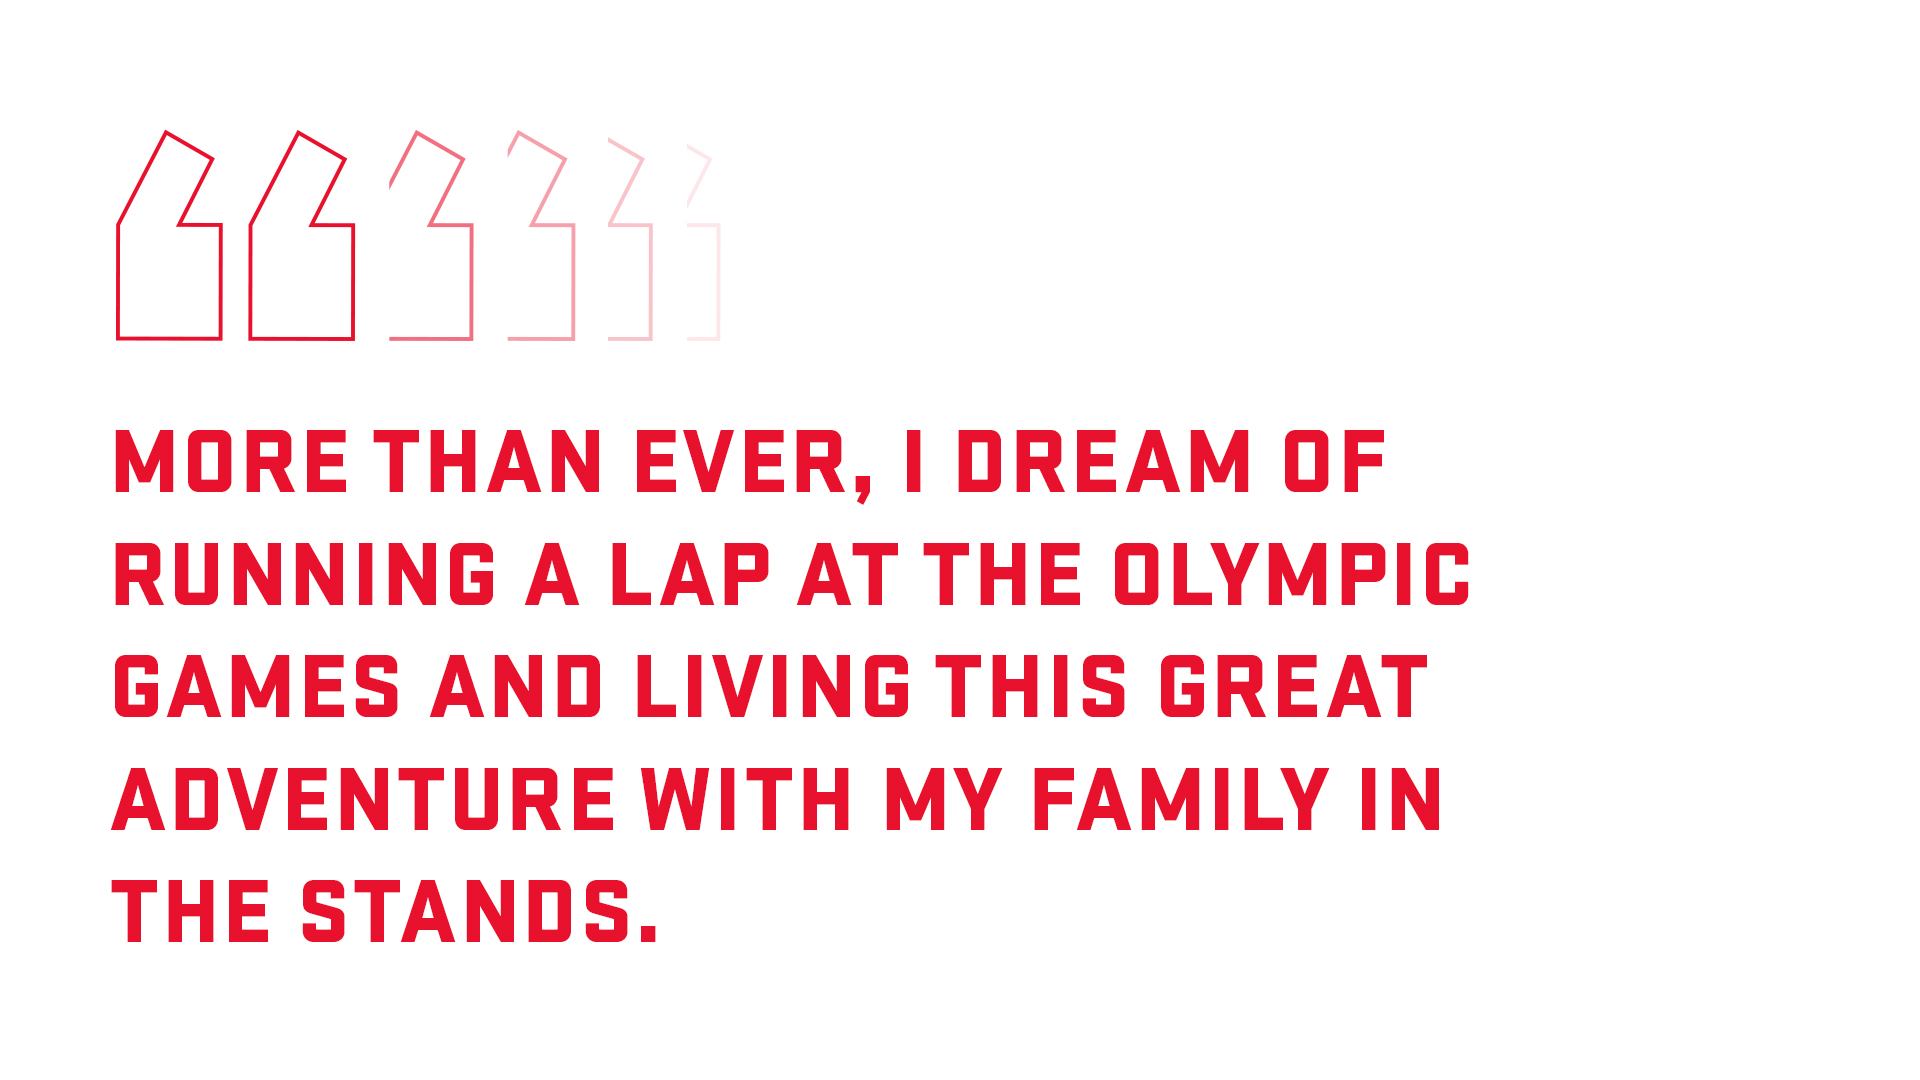 Graphic with quote: More than ever, I dream of racing around the track at the Olympics, and to live this adventure with my family in the stands.